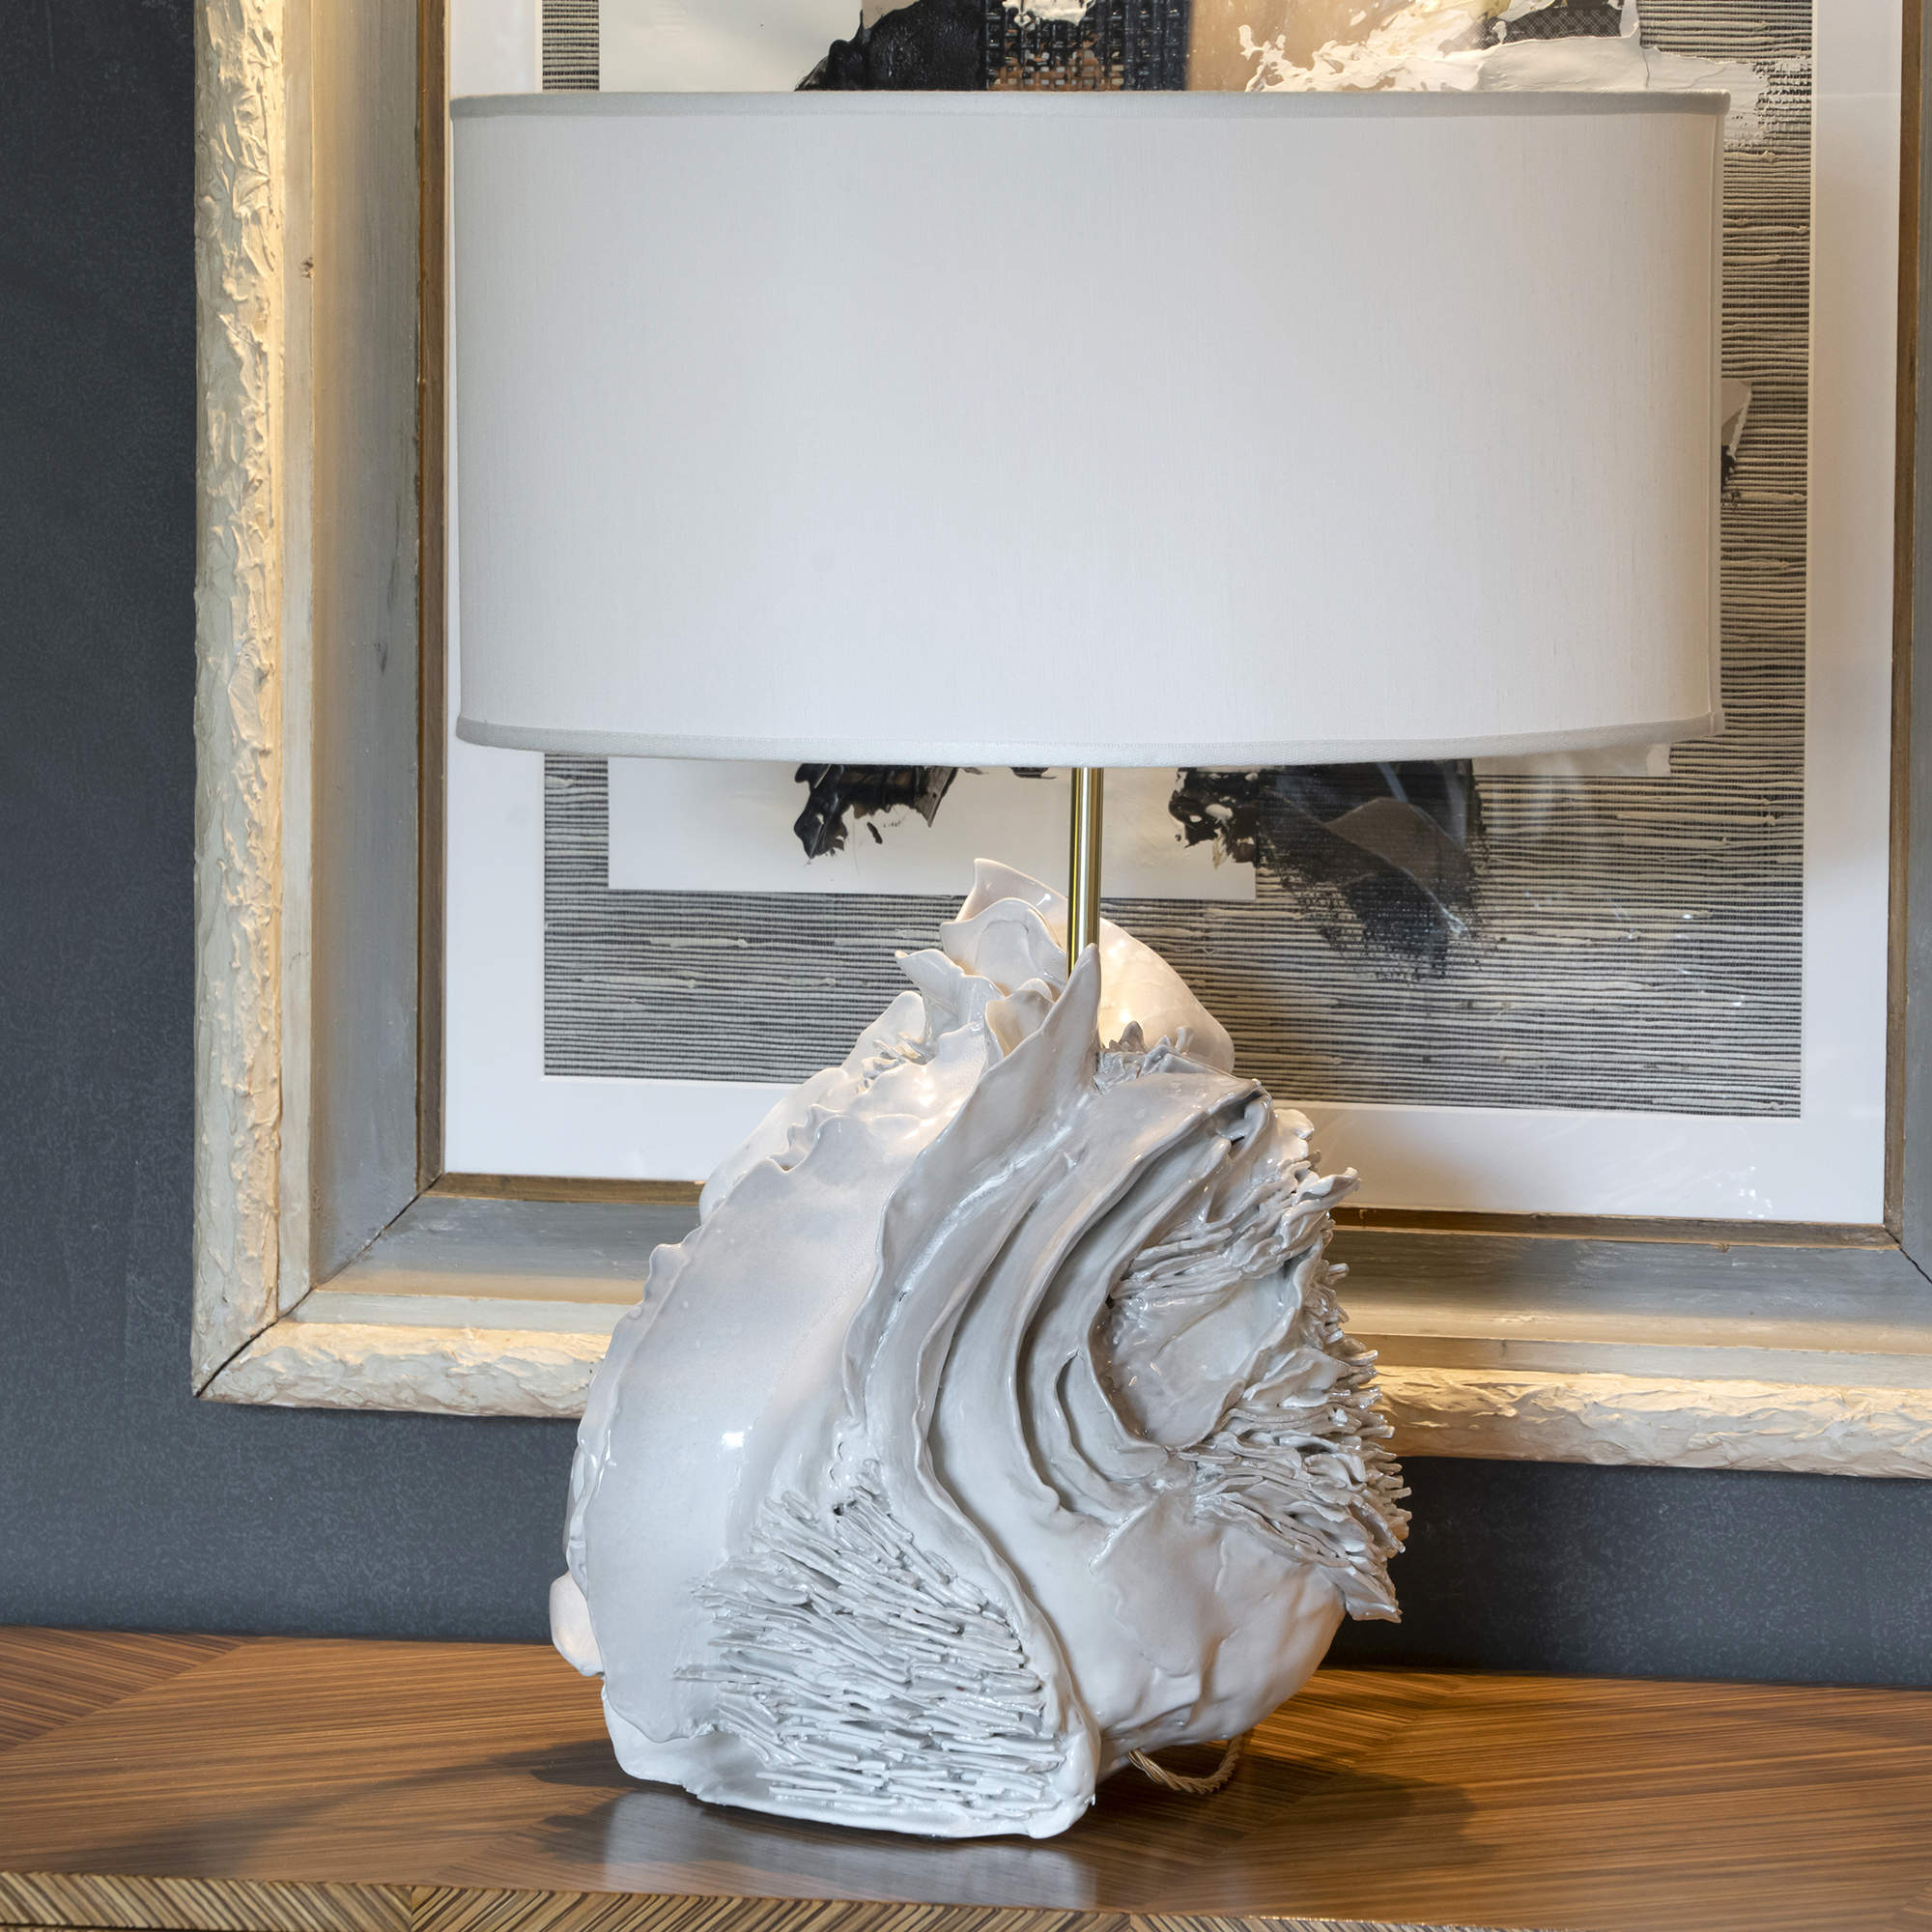 One of a Kind Artistic Ivory Glazed Ceramic Table Lamp, Italy 2020